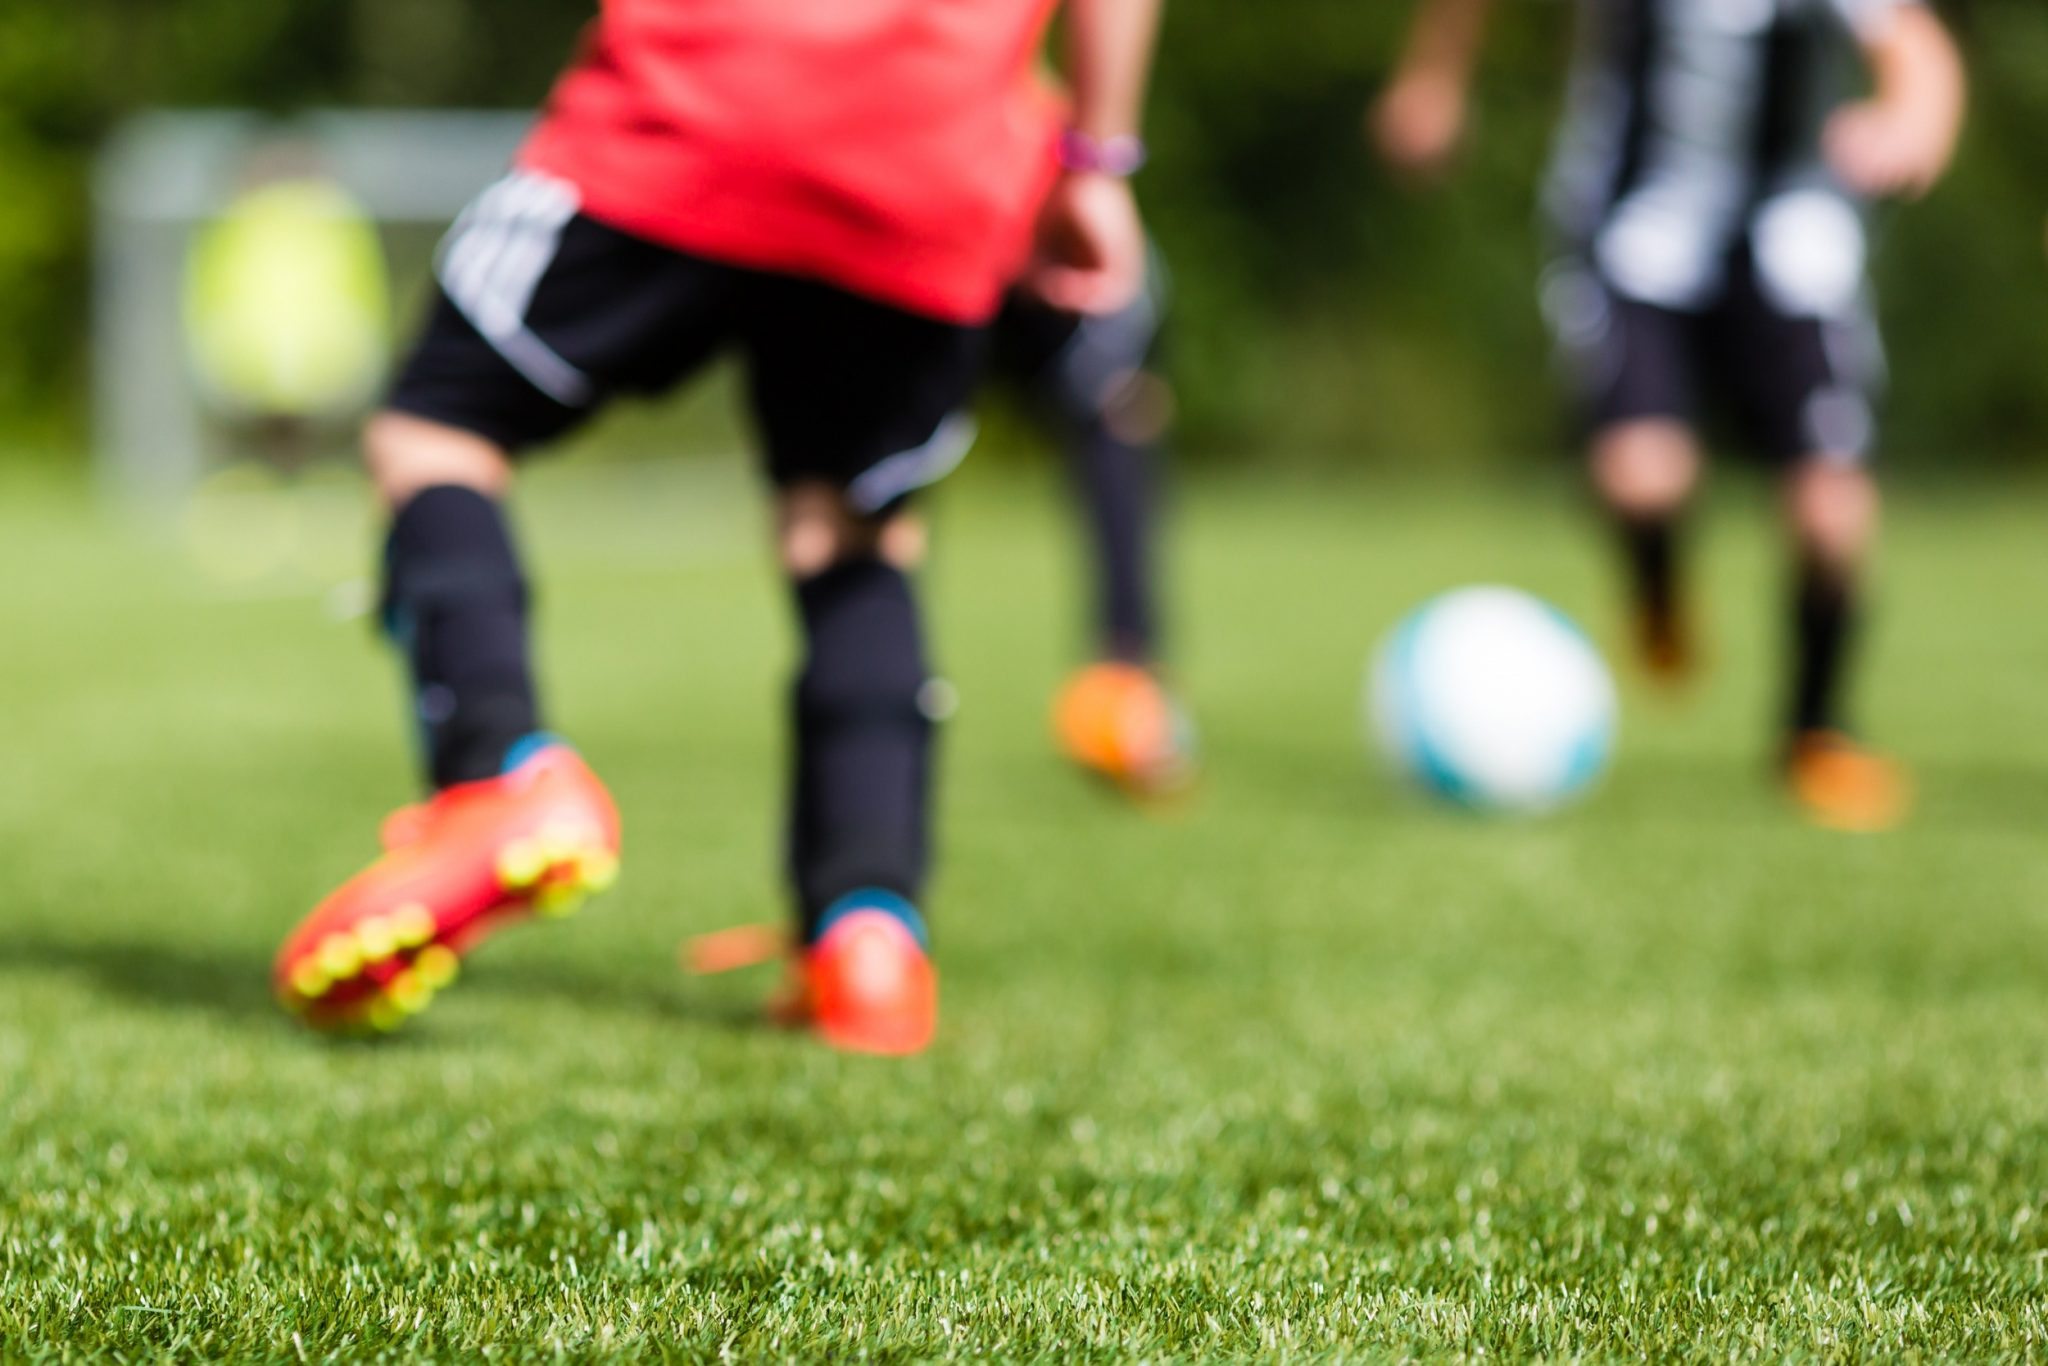 will artificial turf get flattened